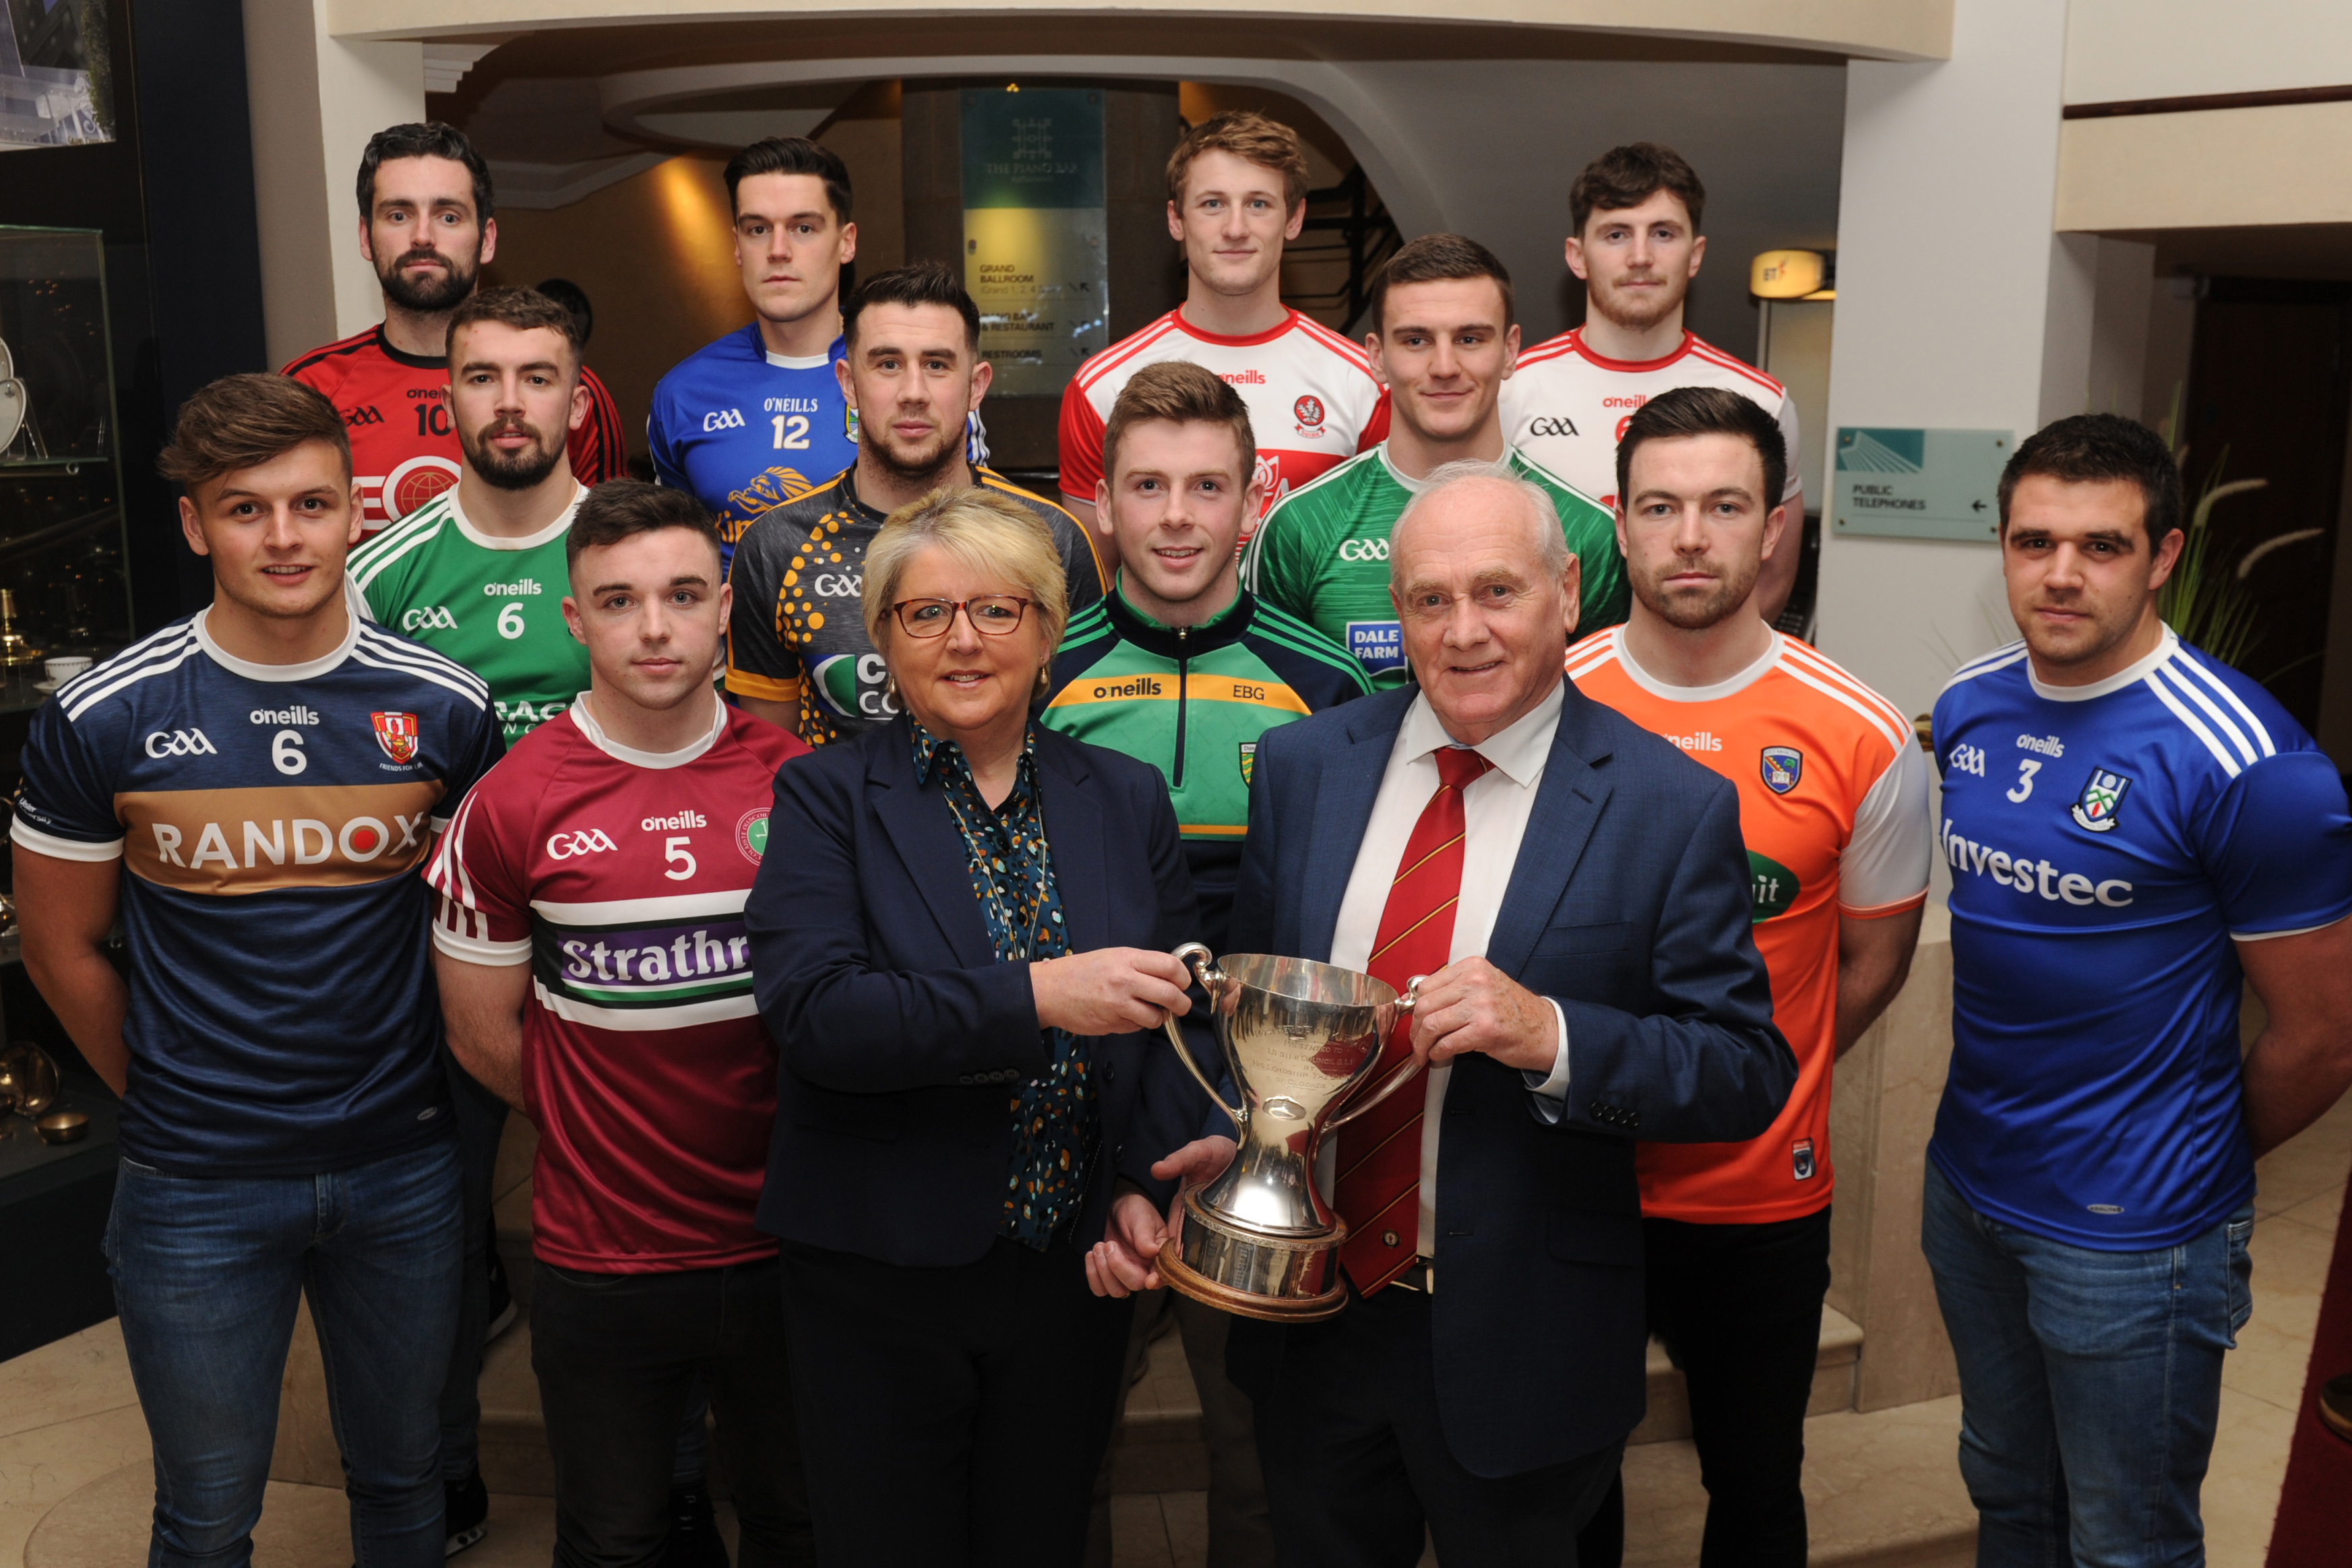 Bank of Ireland Dr McKenna Cup Draw 2019 takes place